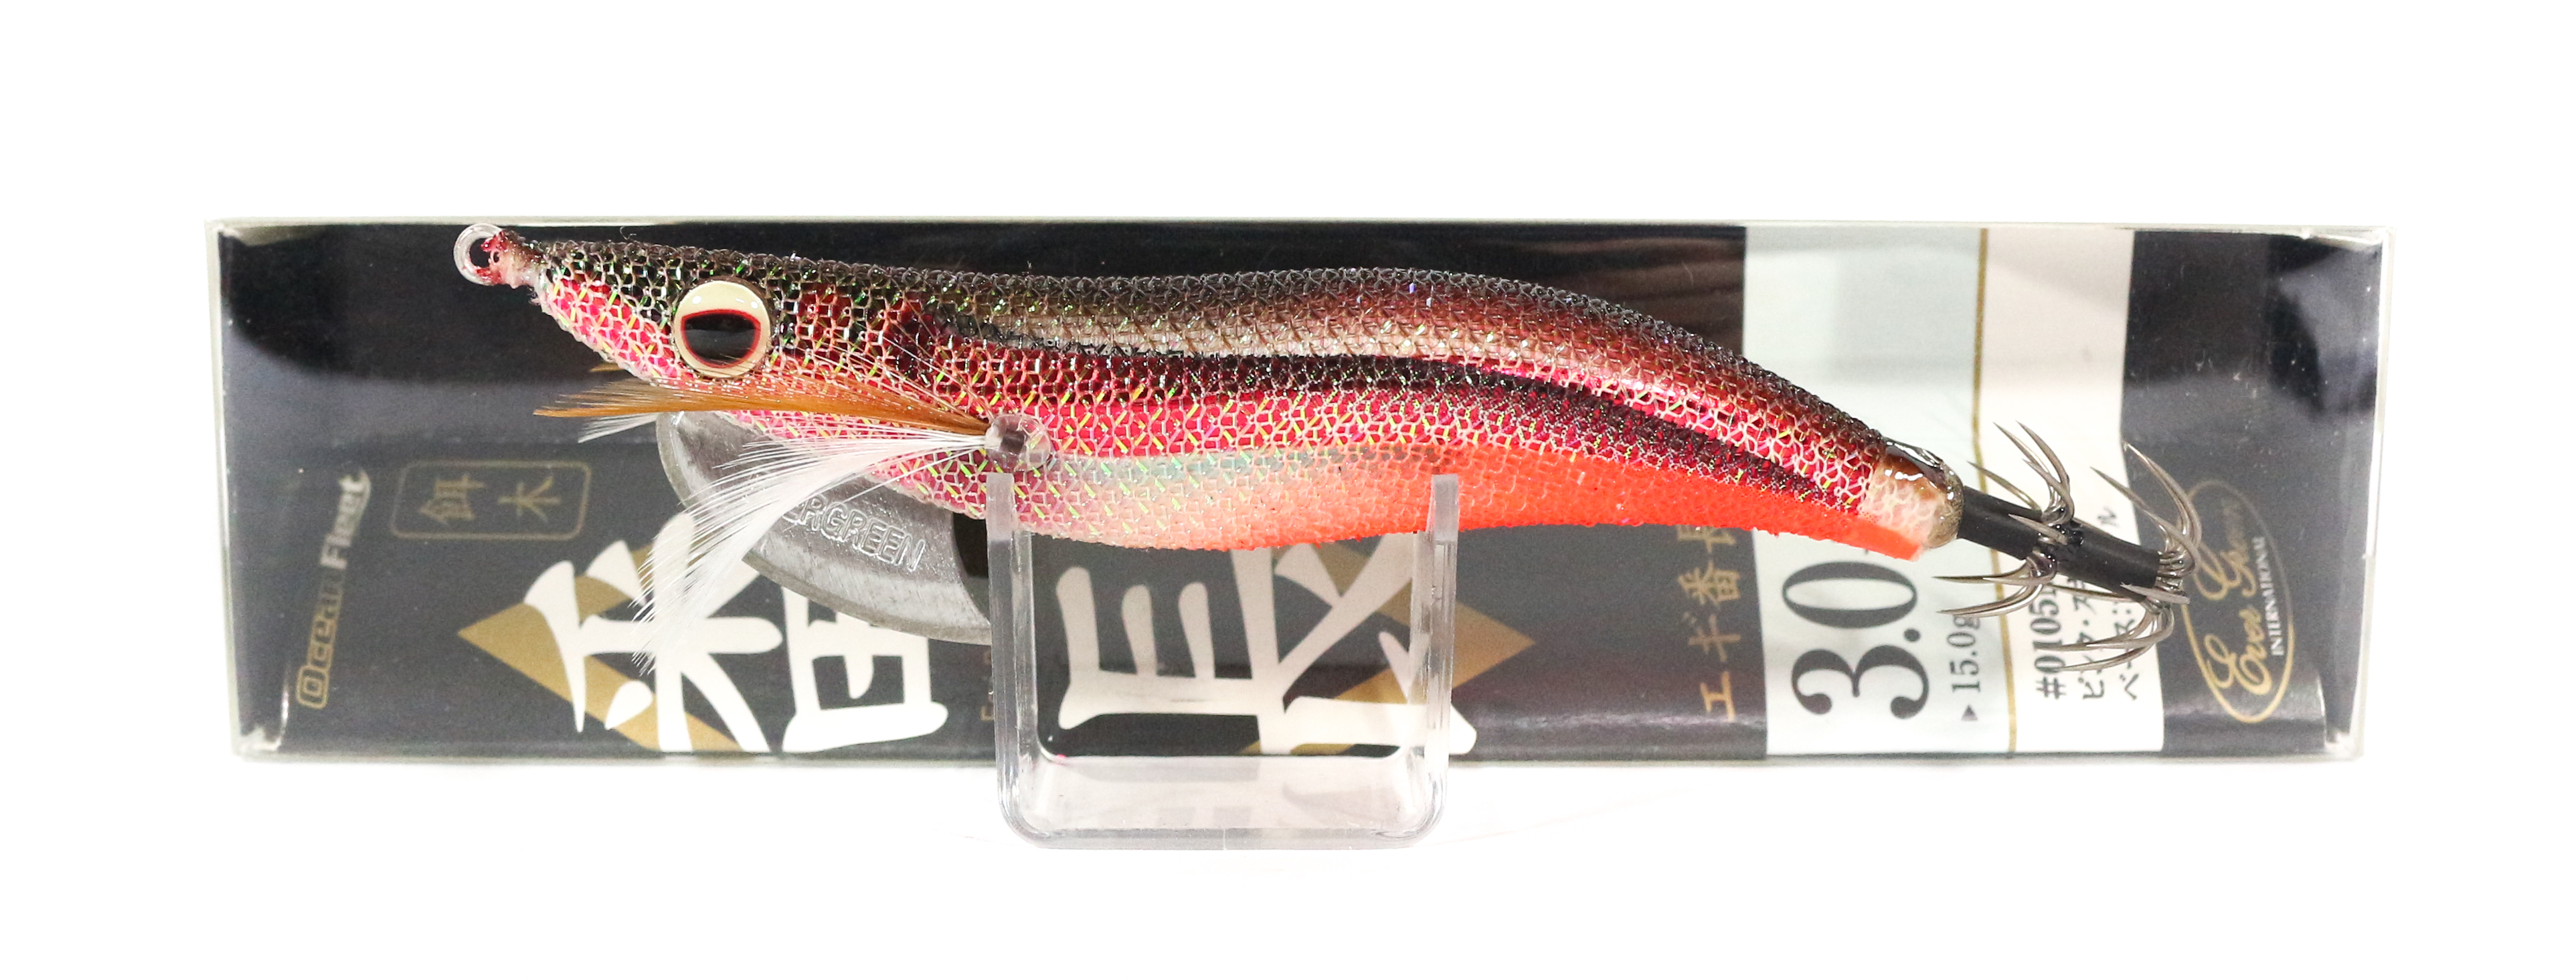 Evergreen Ocean Fleet Custom Squid Jig Lure 3.0 0305R (8283)